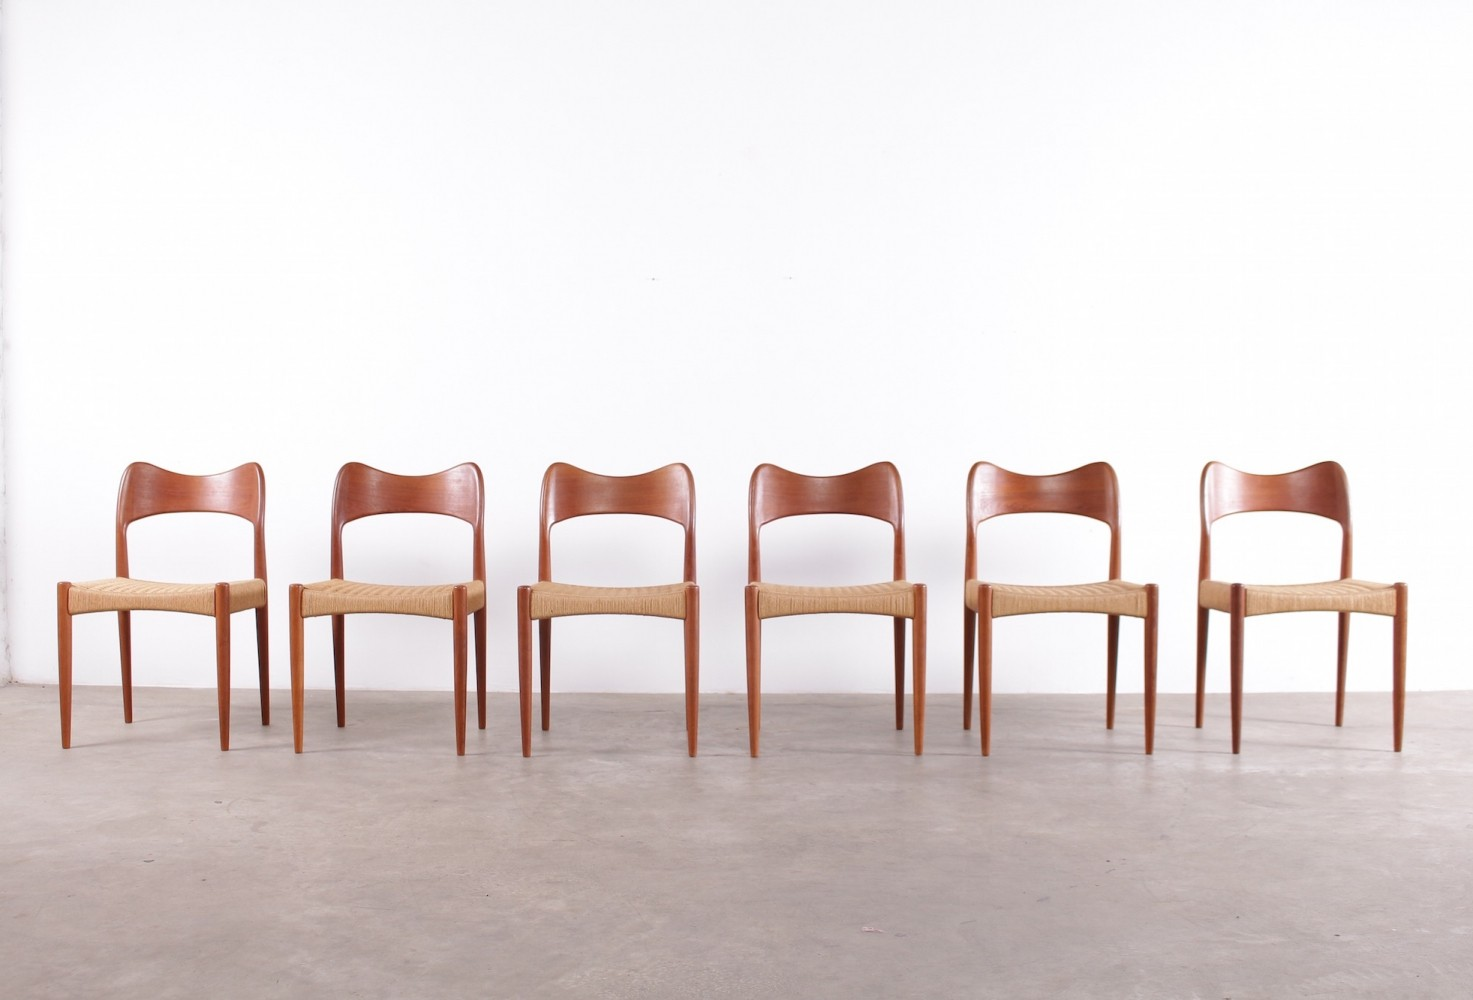 6 scandinavian papercord chairs